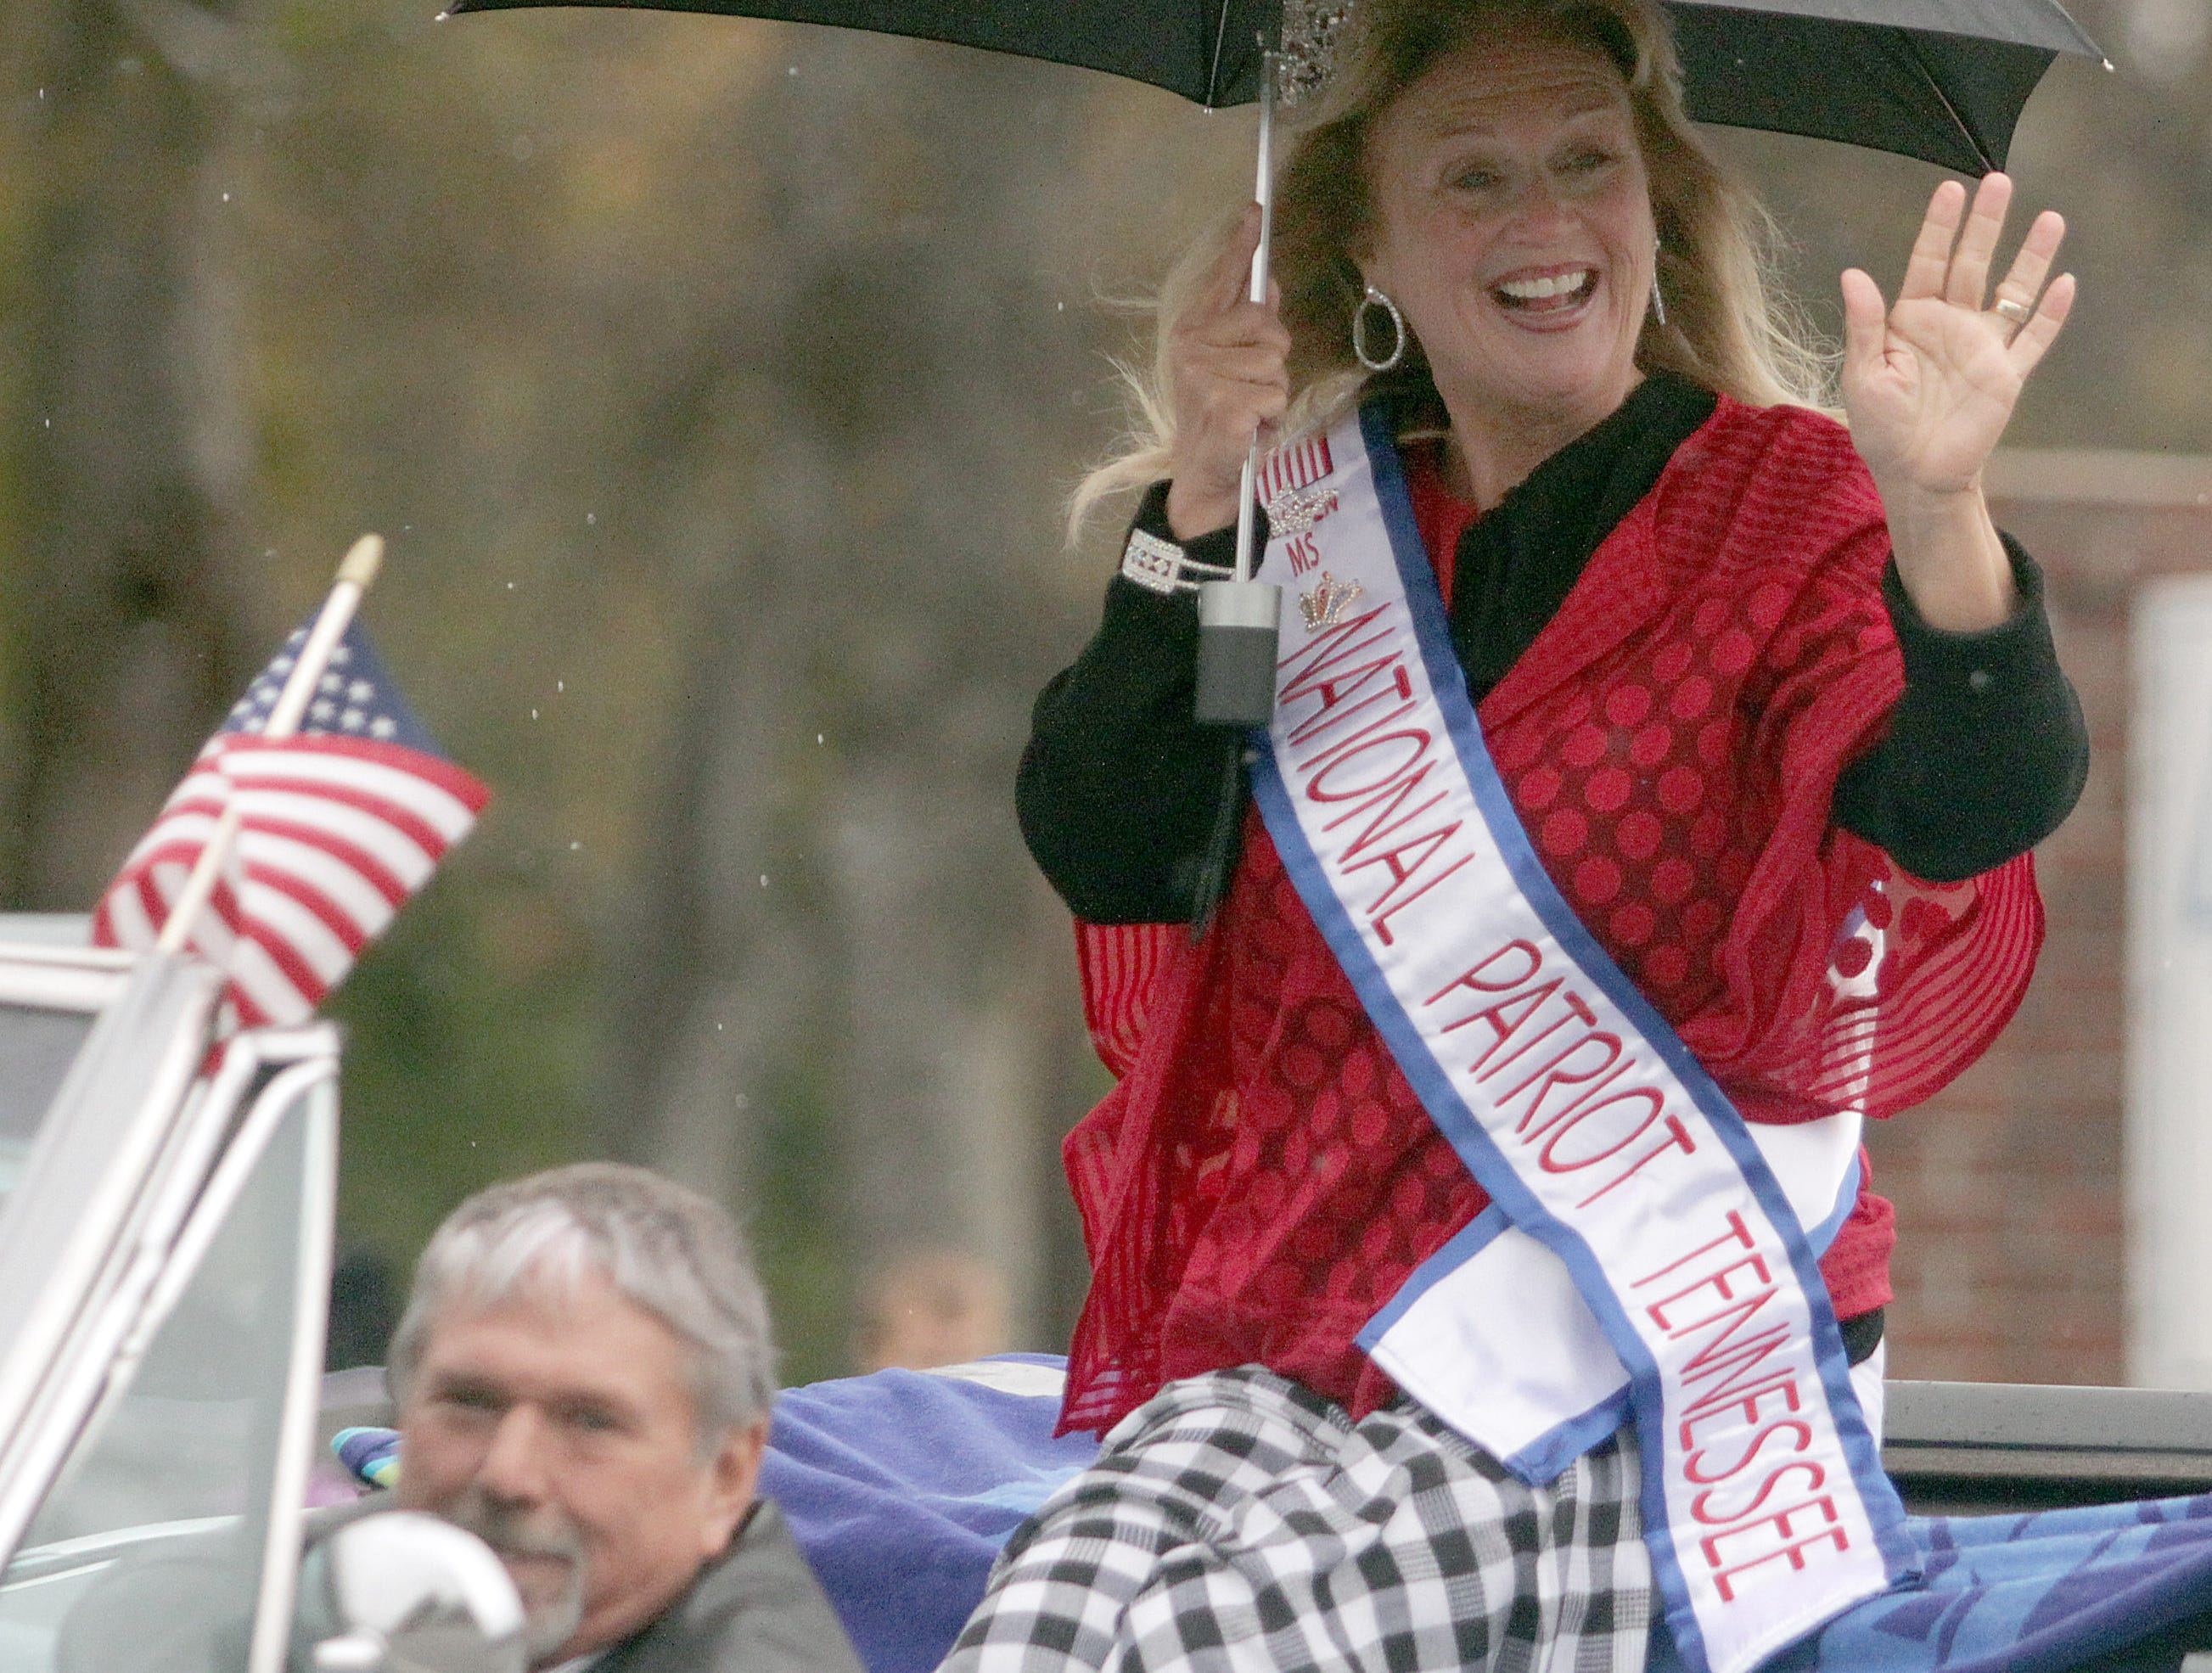 Ms. National Patriot Tennessee rides in the Veterans Day Parade in Hendersonville, TN on Sunday, November 4, 2018.